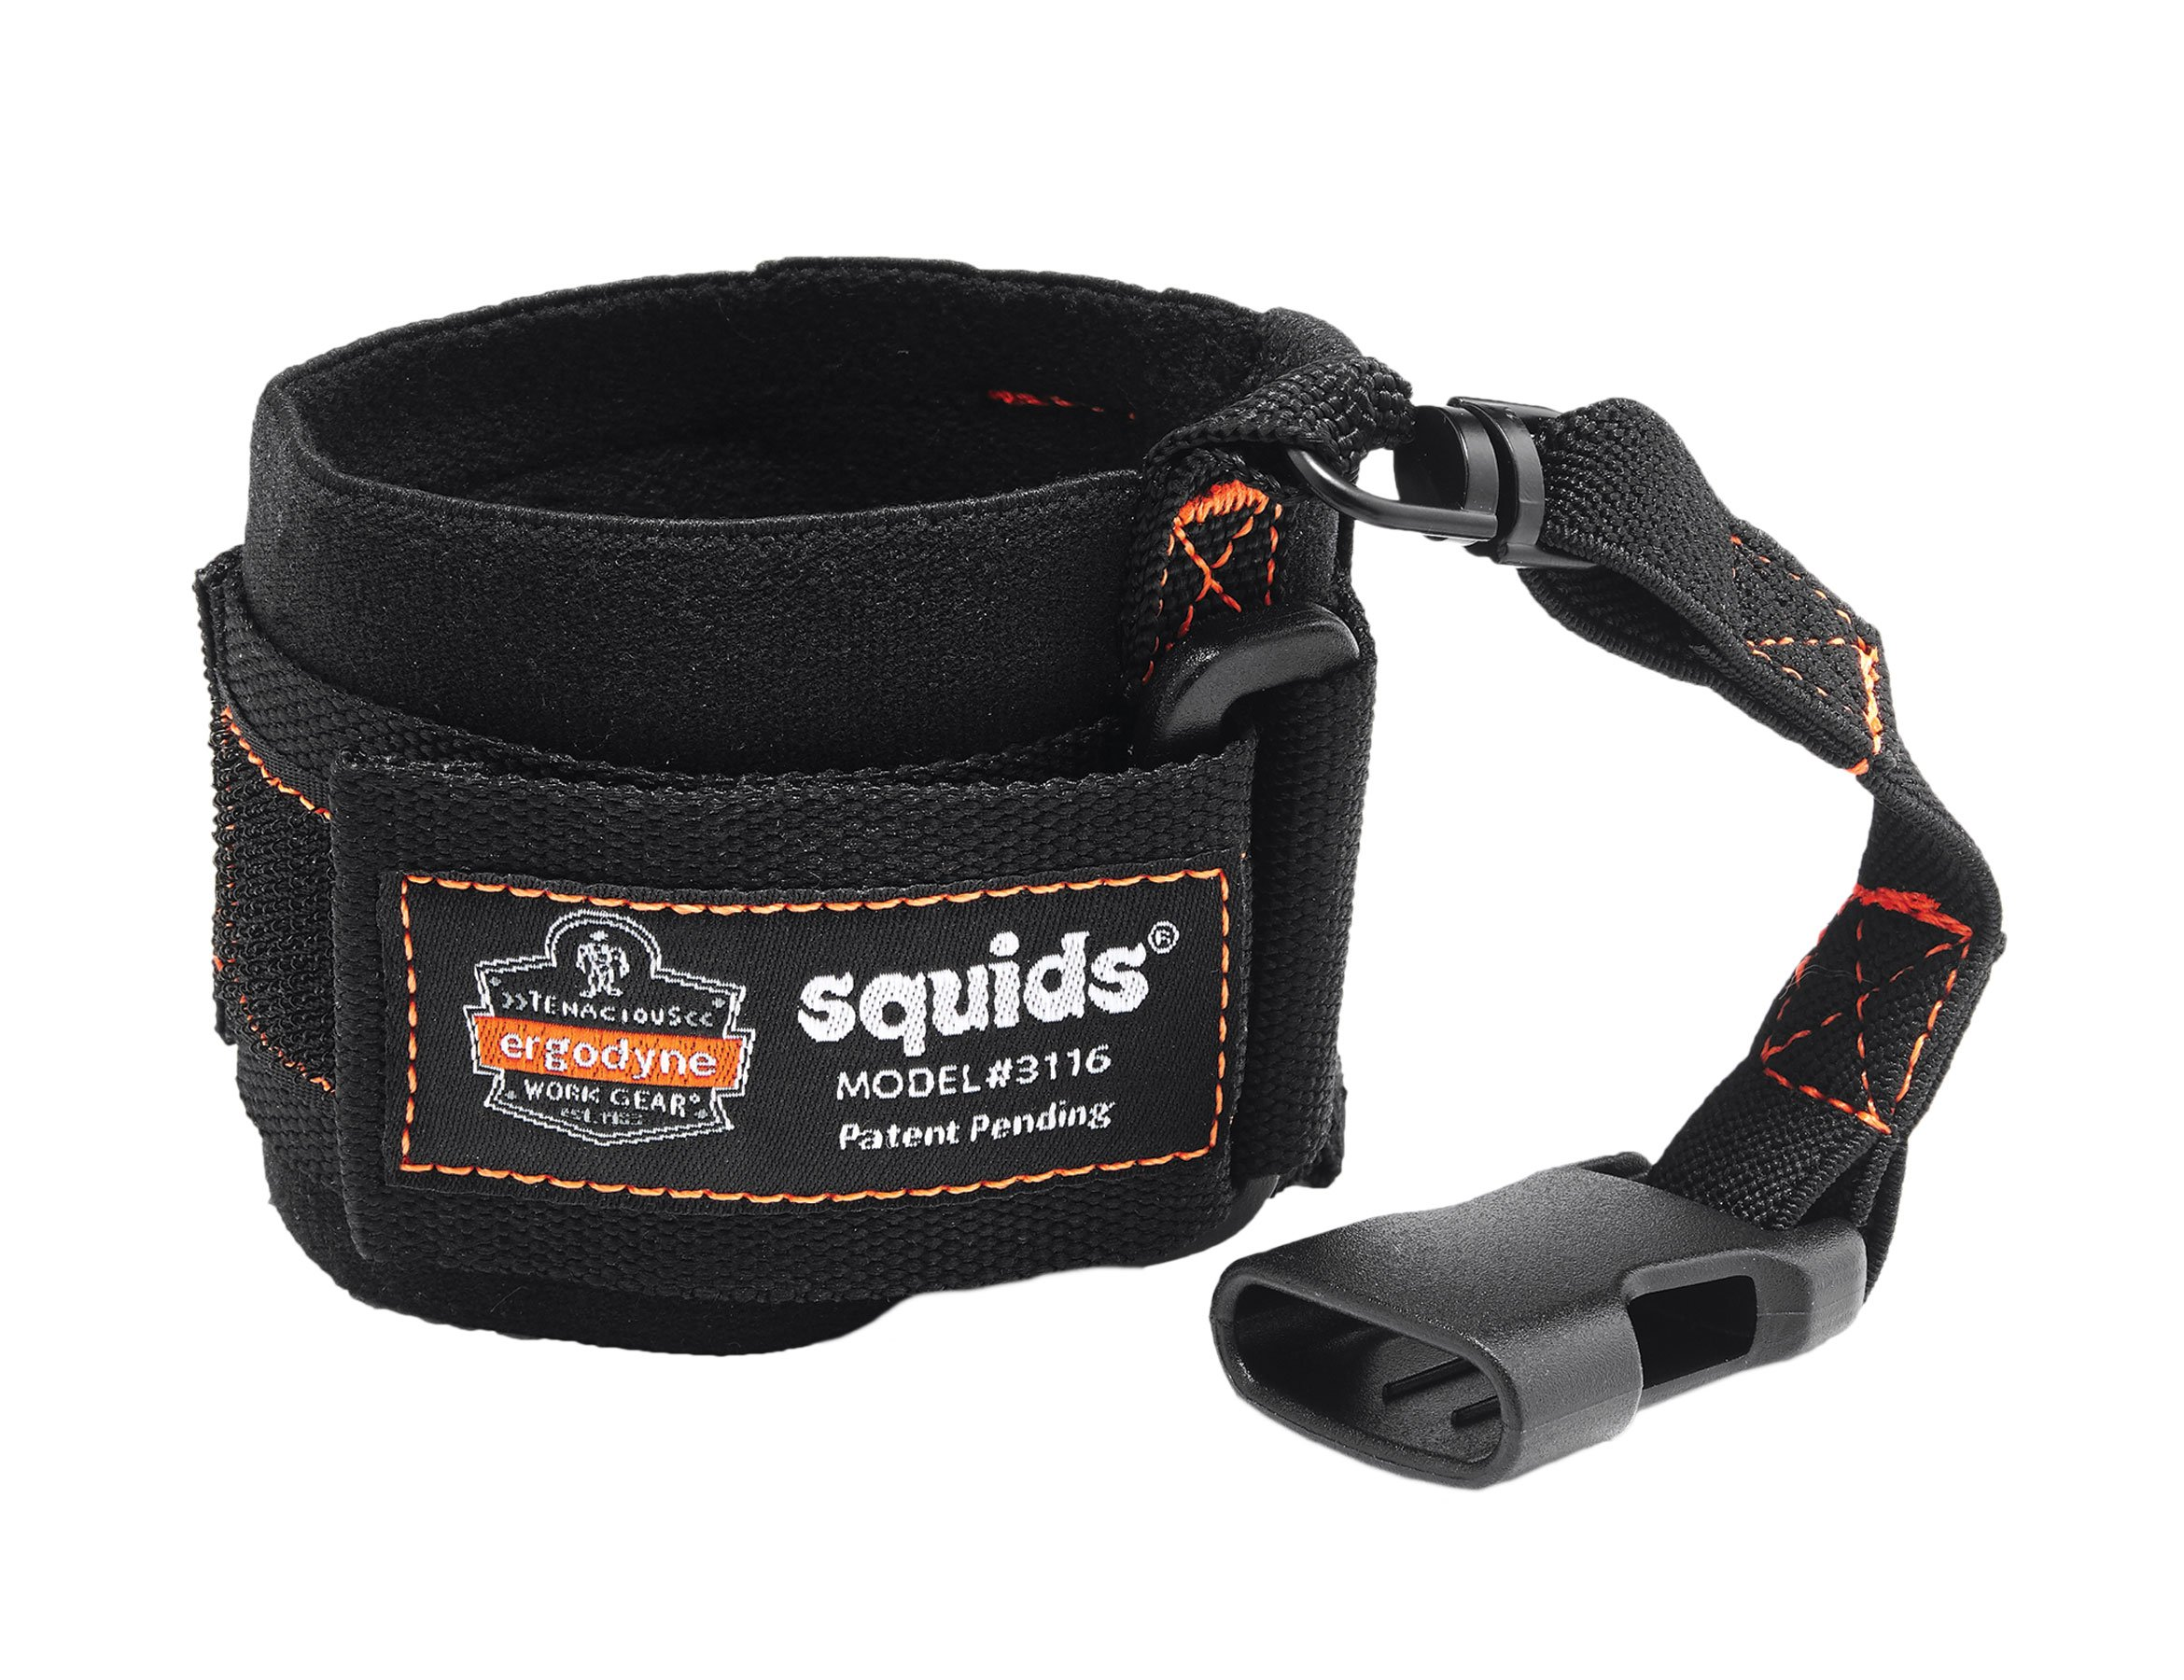 Ergodyne Squids 3116 Pull-On Wrist Tool Lanyard with Buckle Connection, 3 Pounds